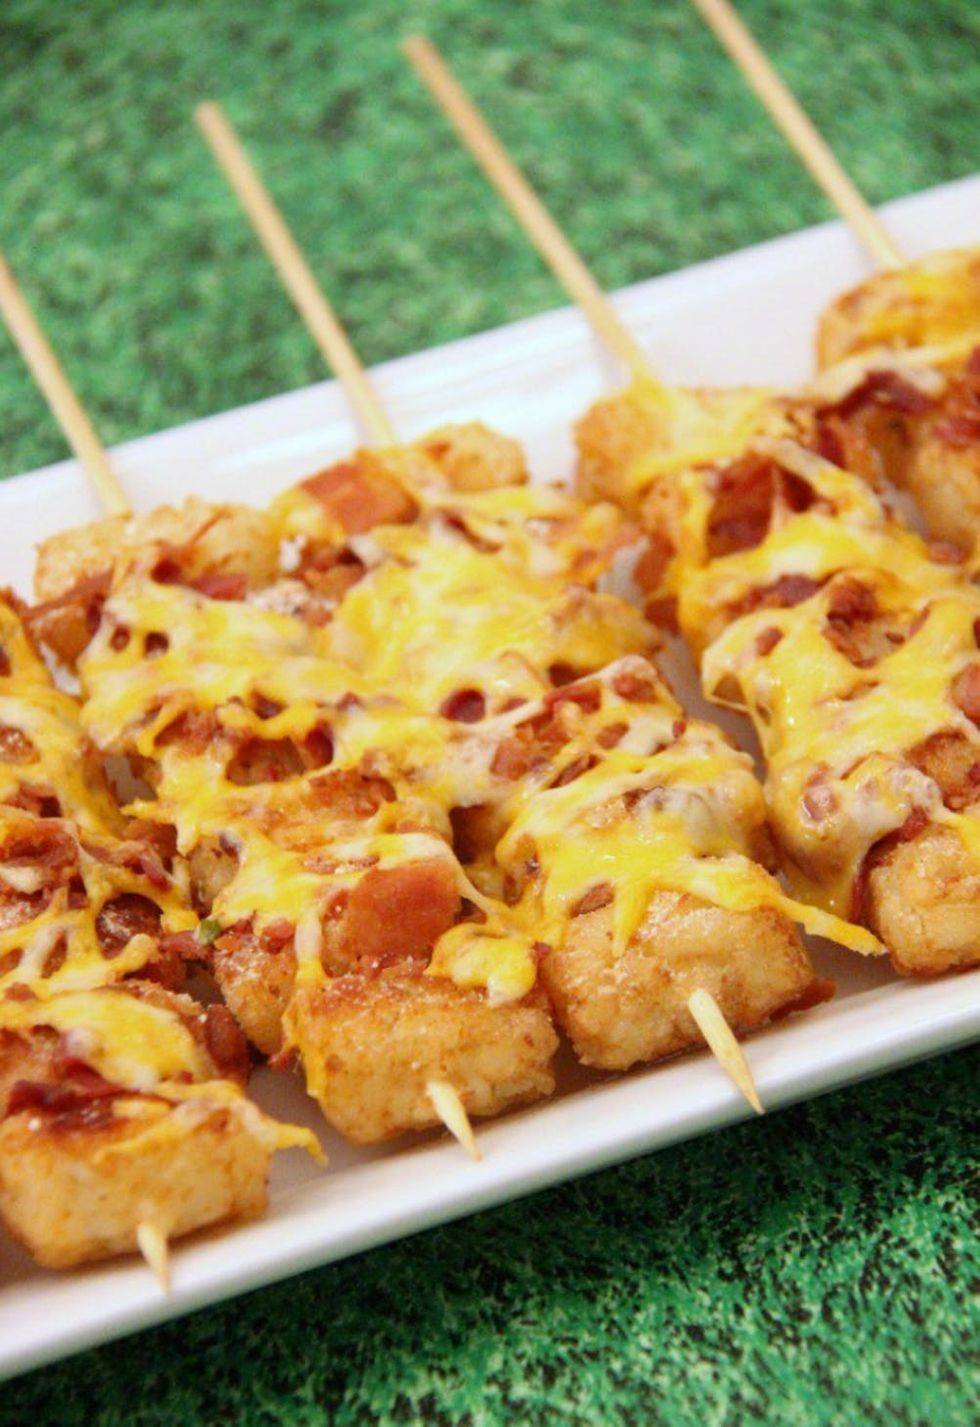 25 Of The Most Delicious Super Bowl